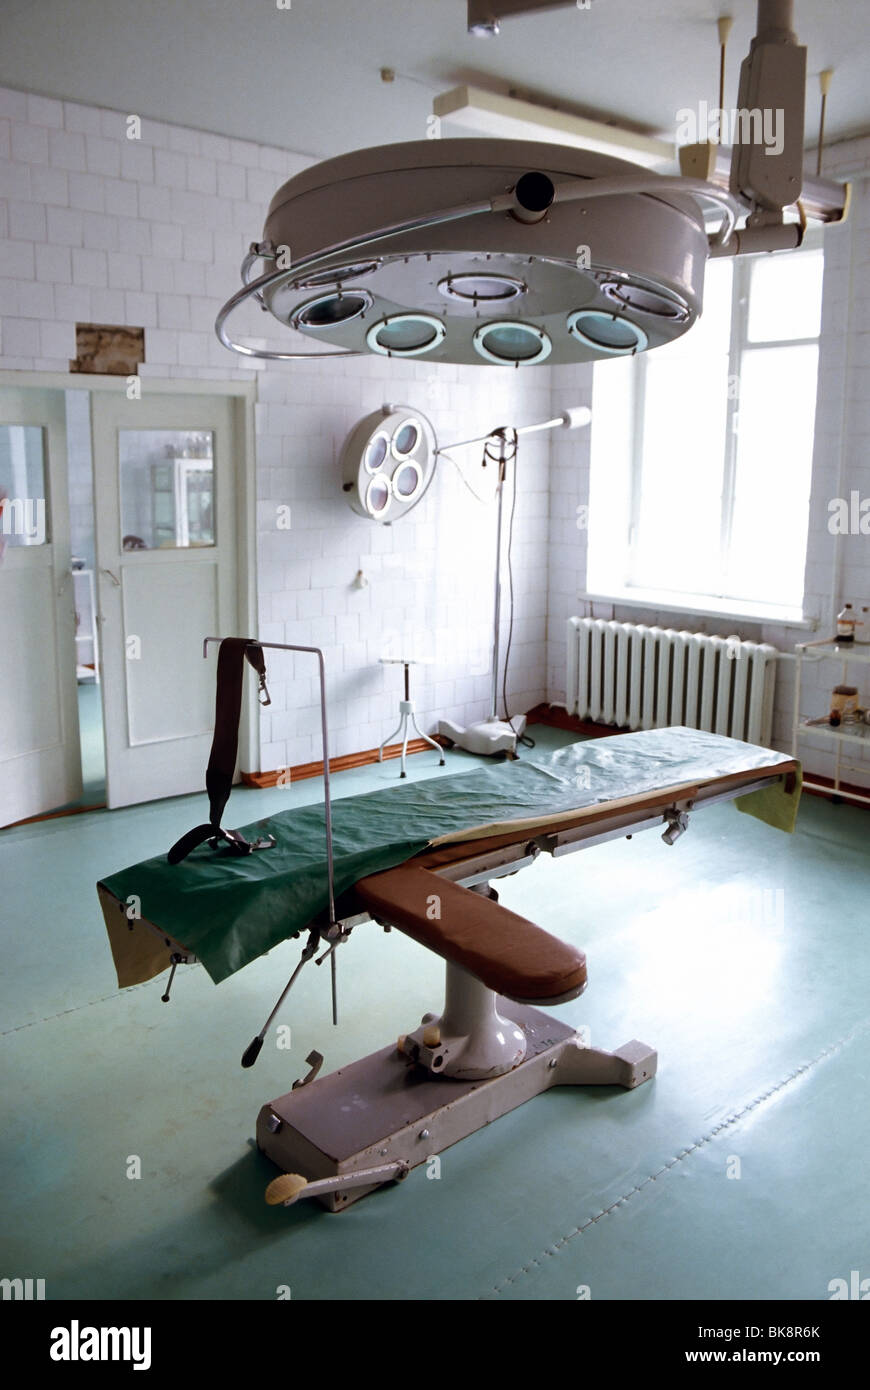 hospital-operating-room-in-the-former-so